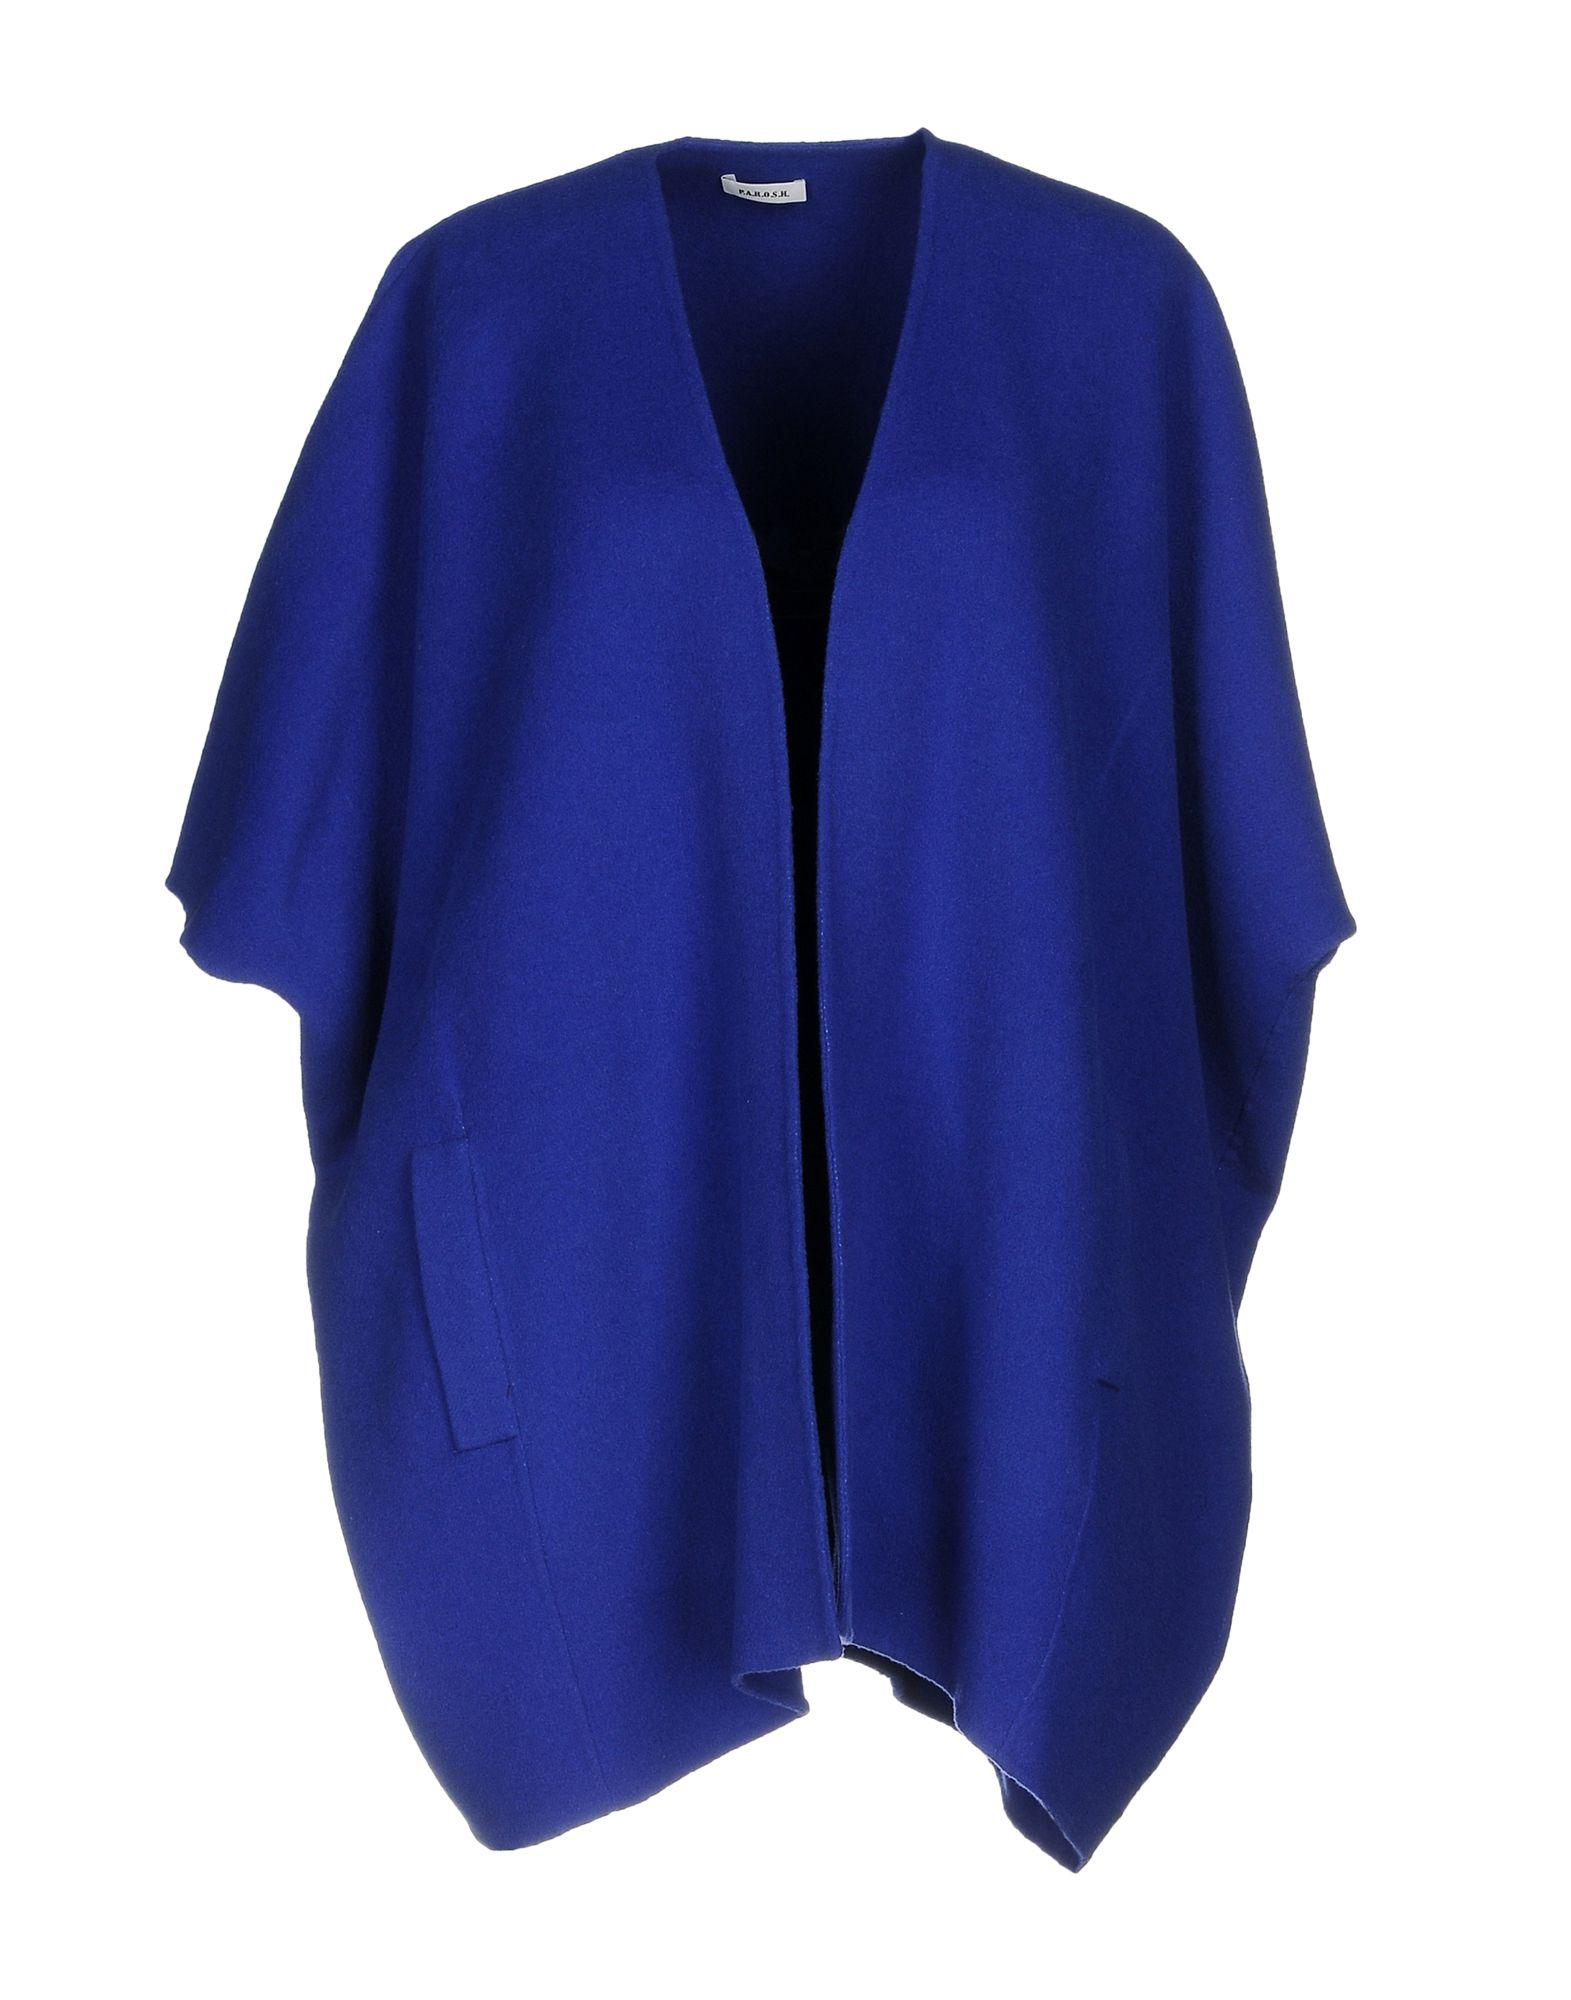 P.a.r.o.s.h. Capes & Ponchos In Blue